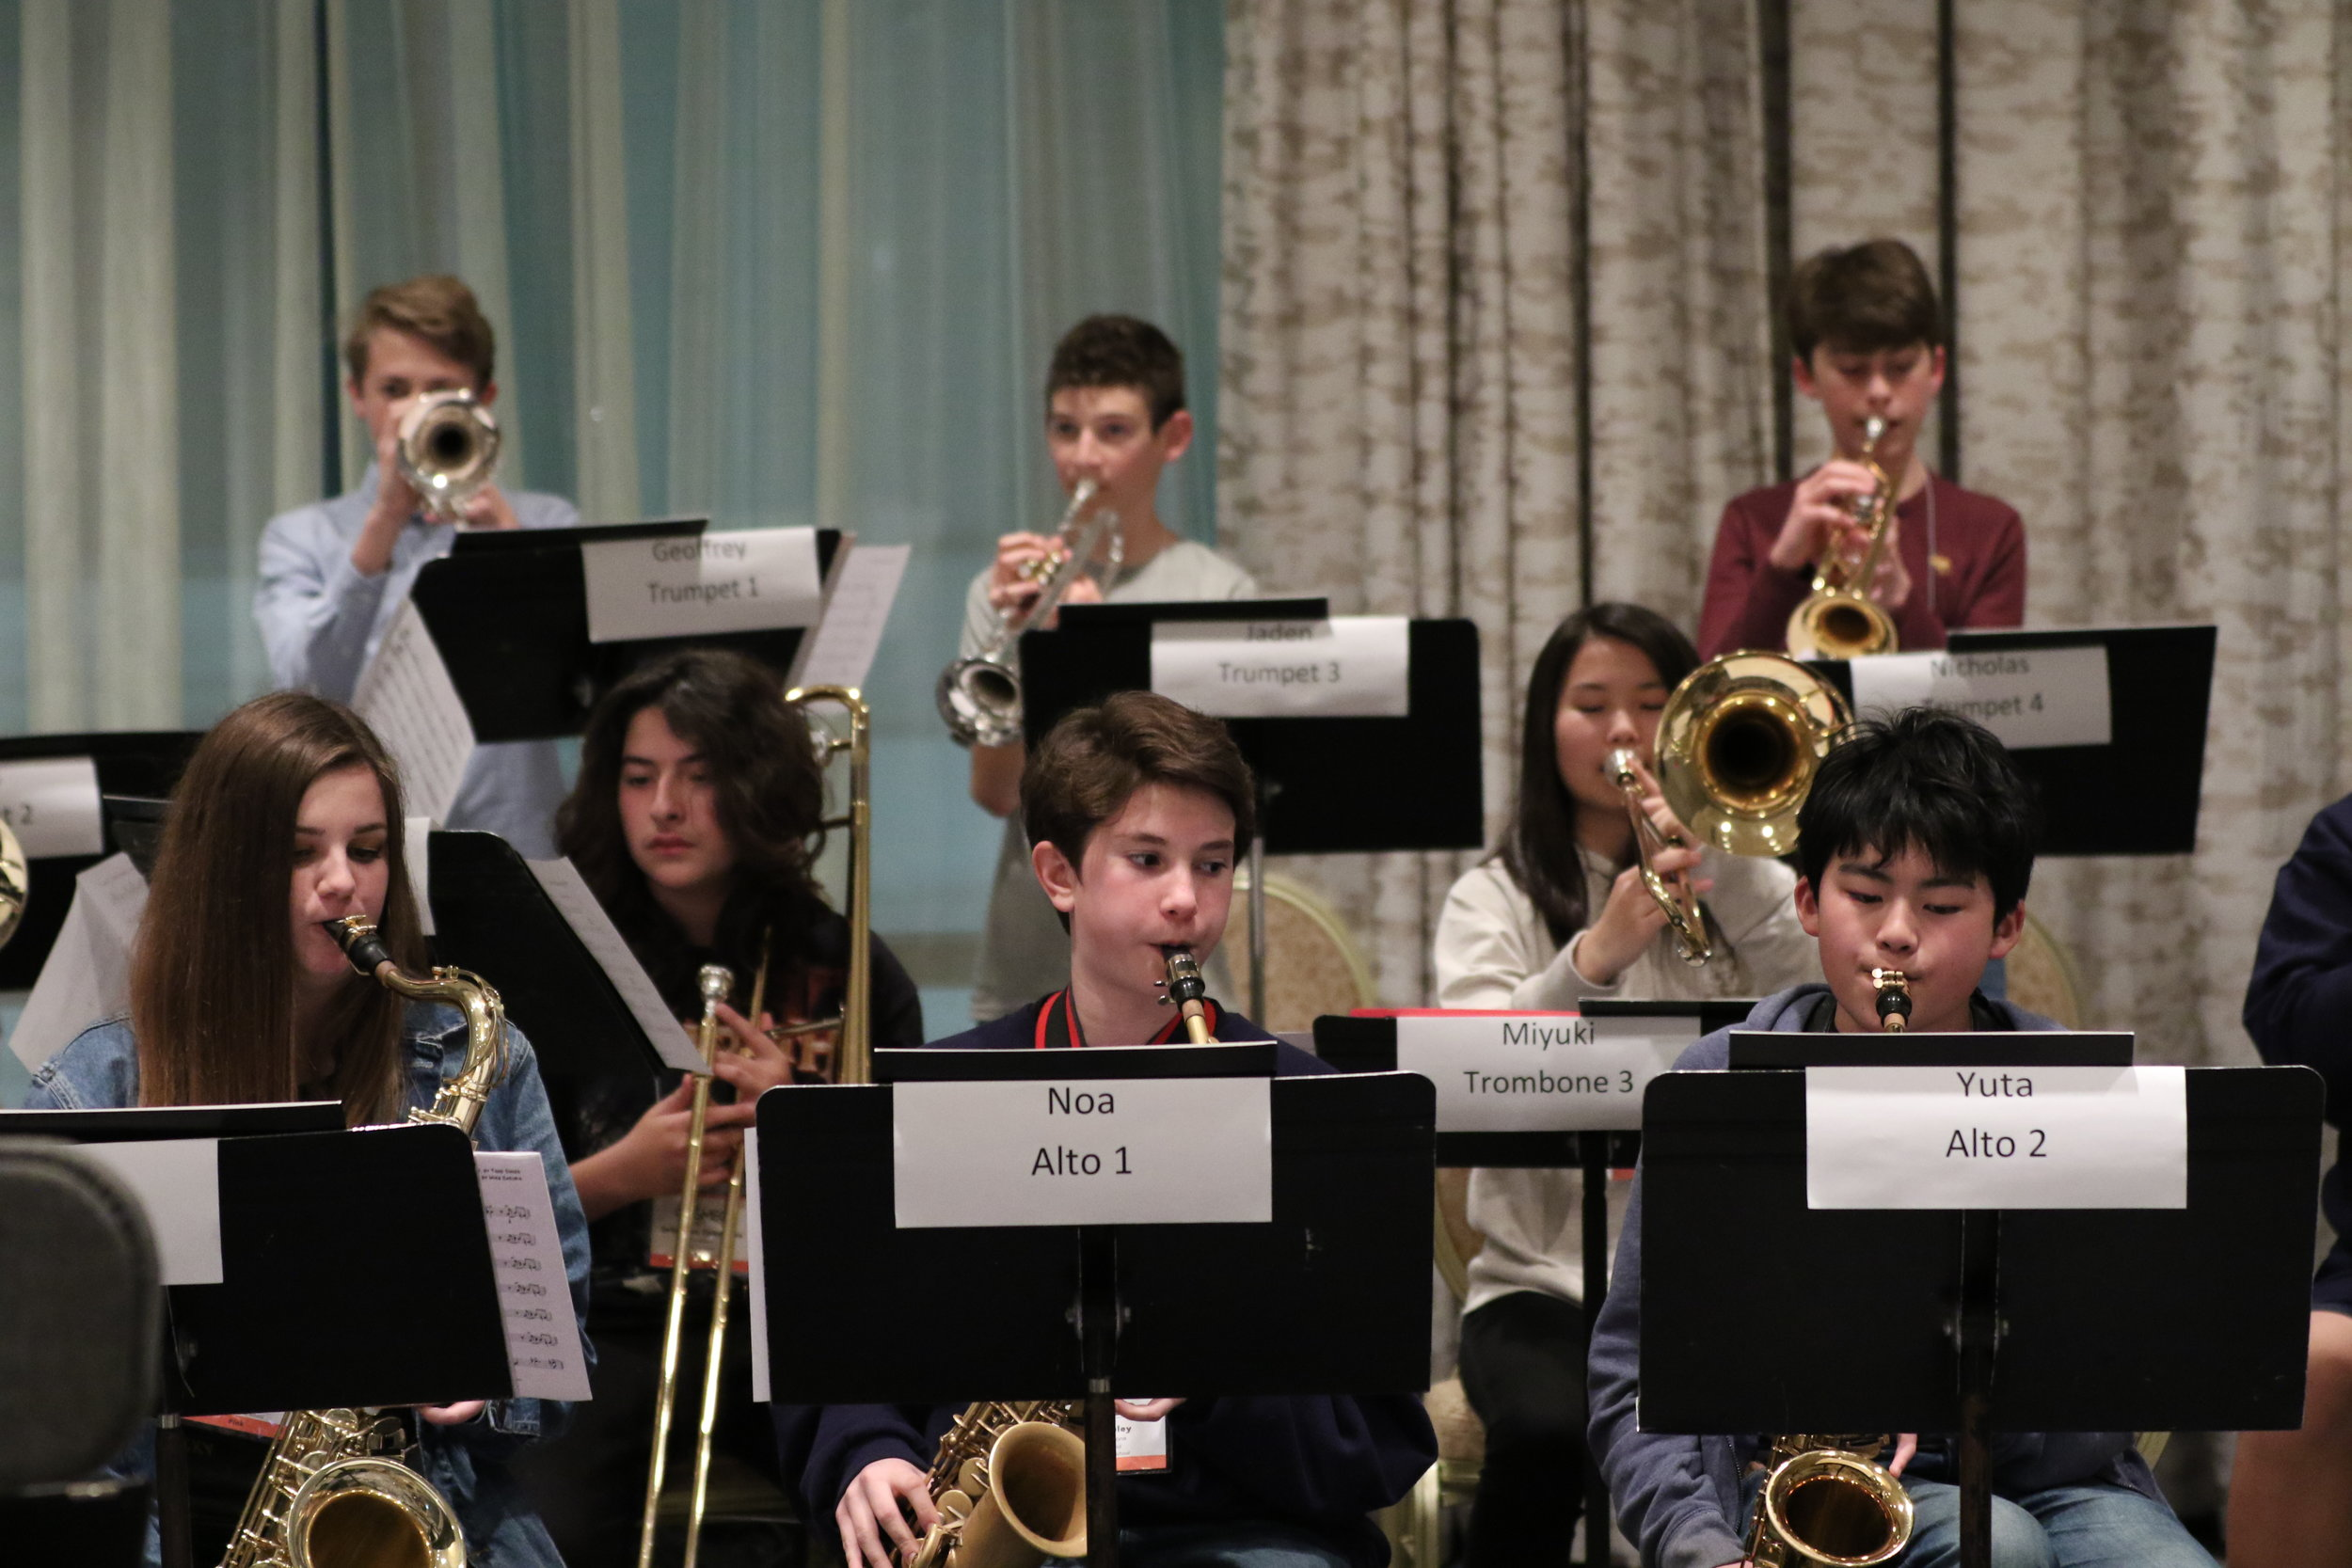 Jr. High Jazz Band directed by Mike Galisatus  - Check out the students in rehearsal